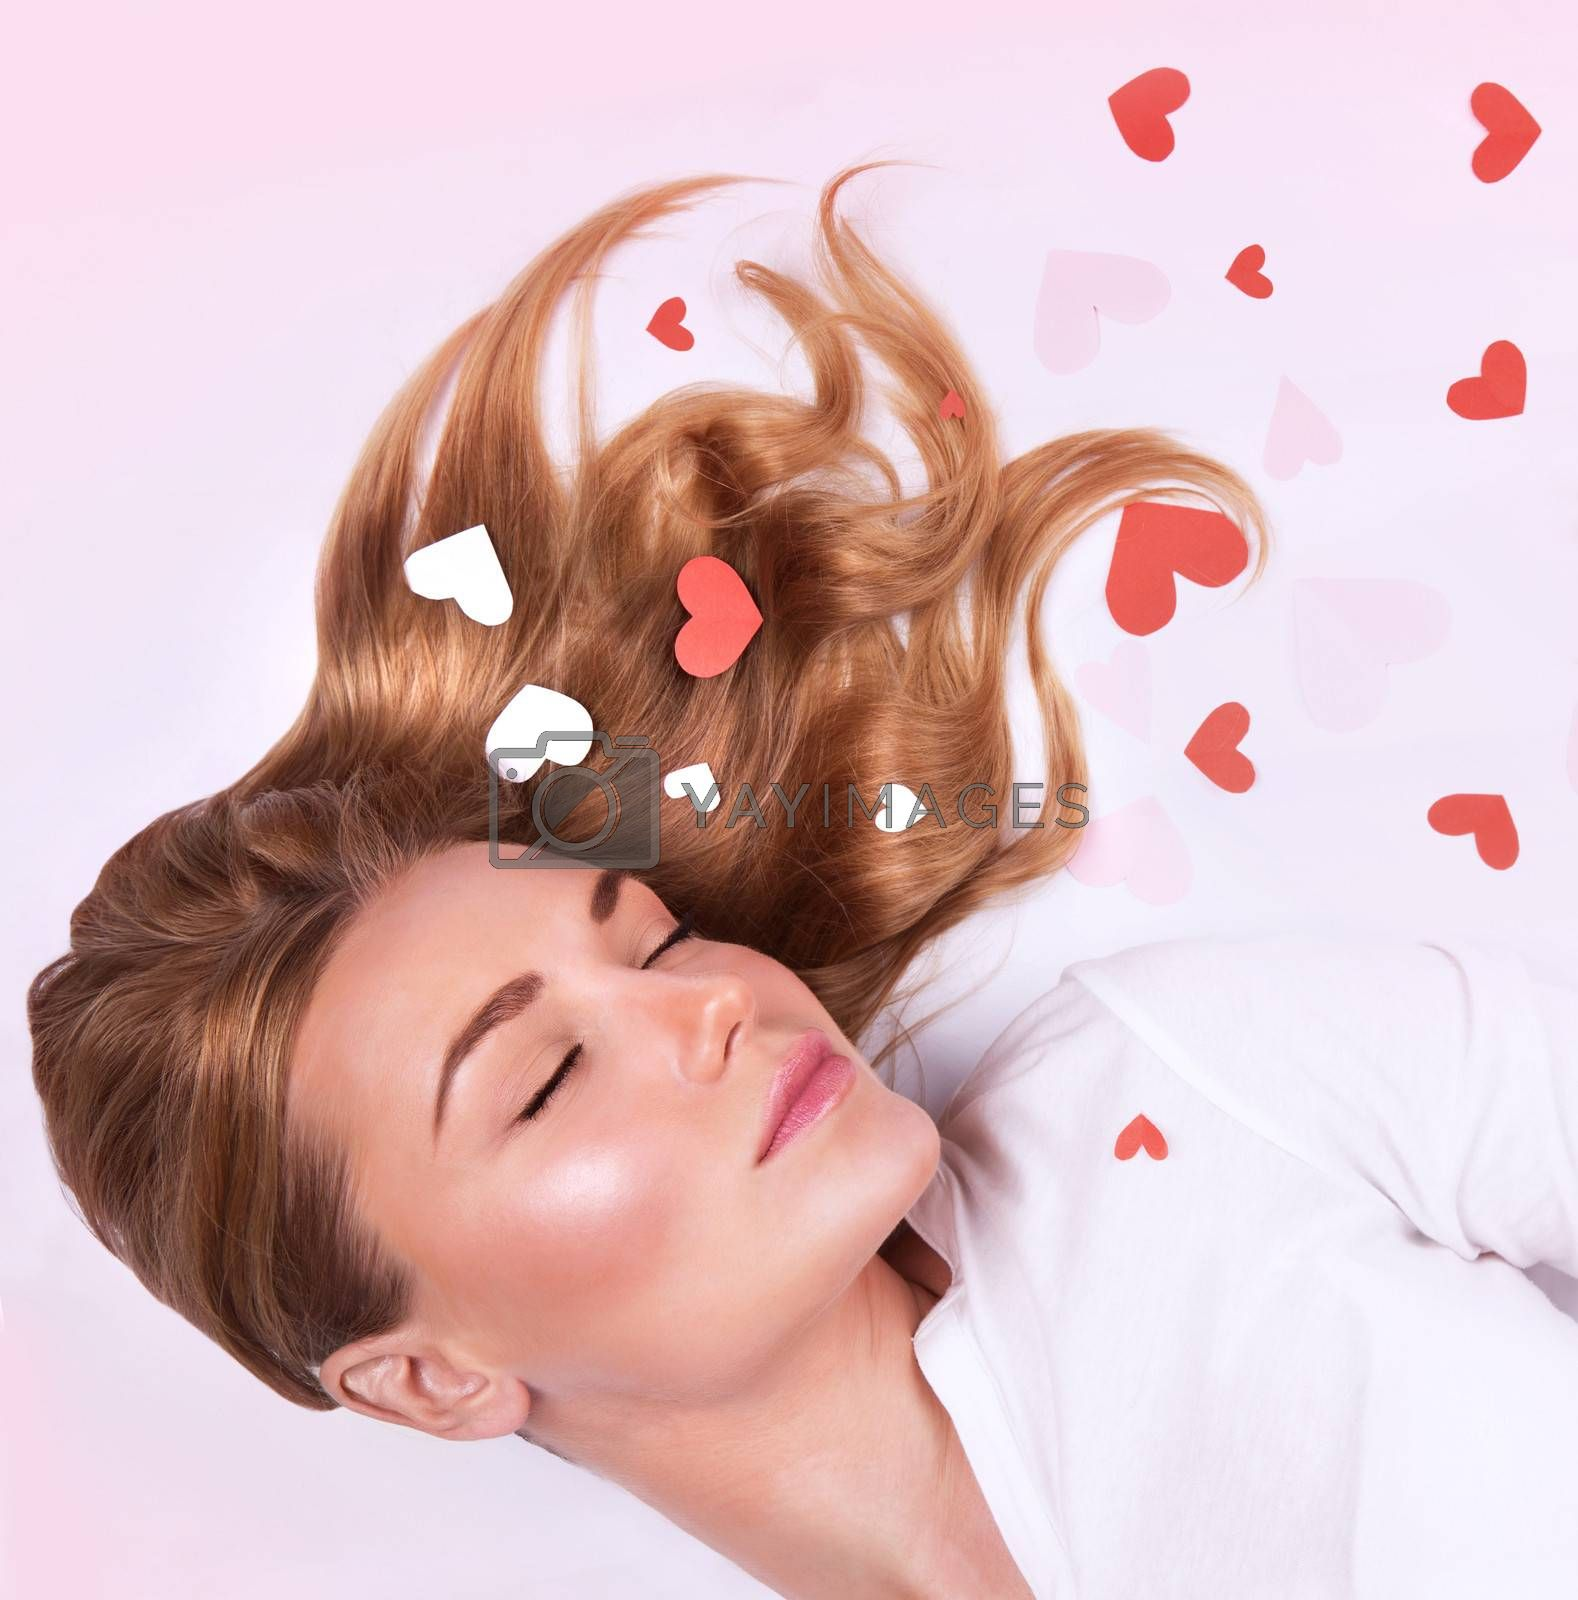 Closeup portrait of dreamy girl with closed eyes lying down on white background, red heart decoration, Valentines day, love and romance concept